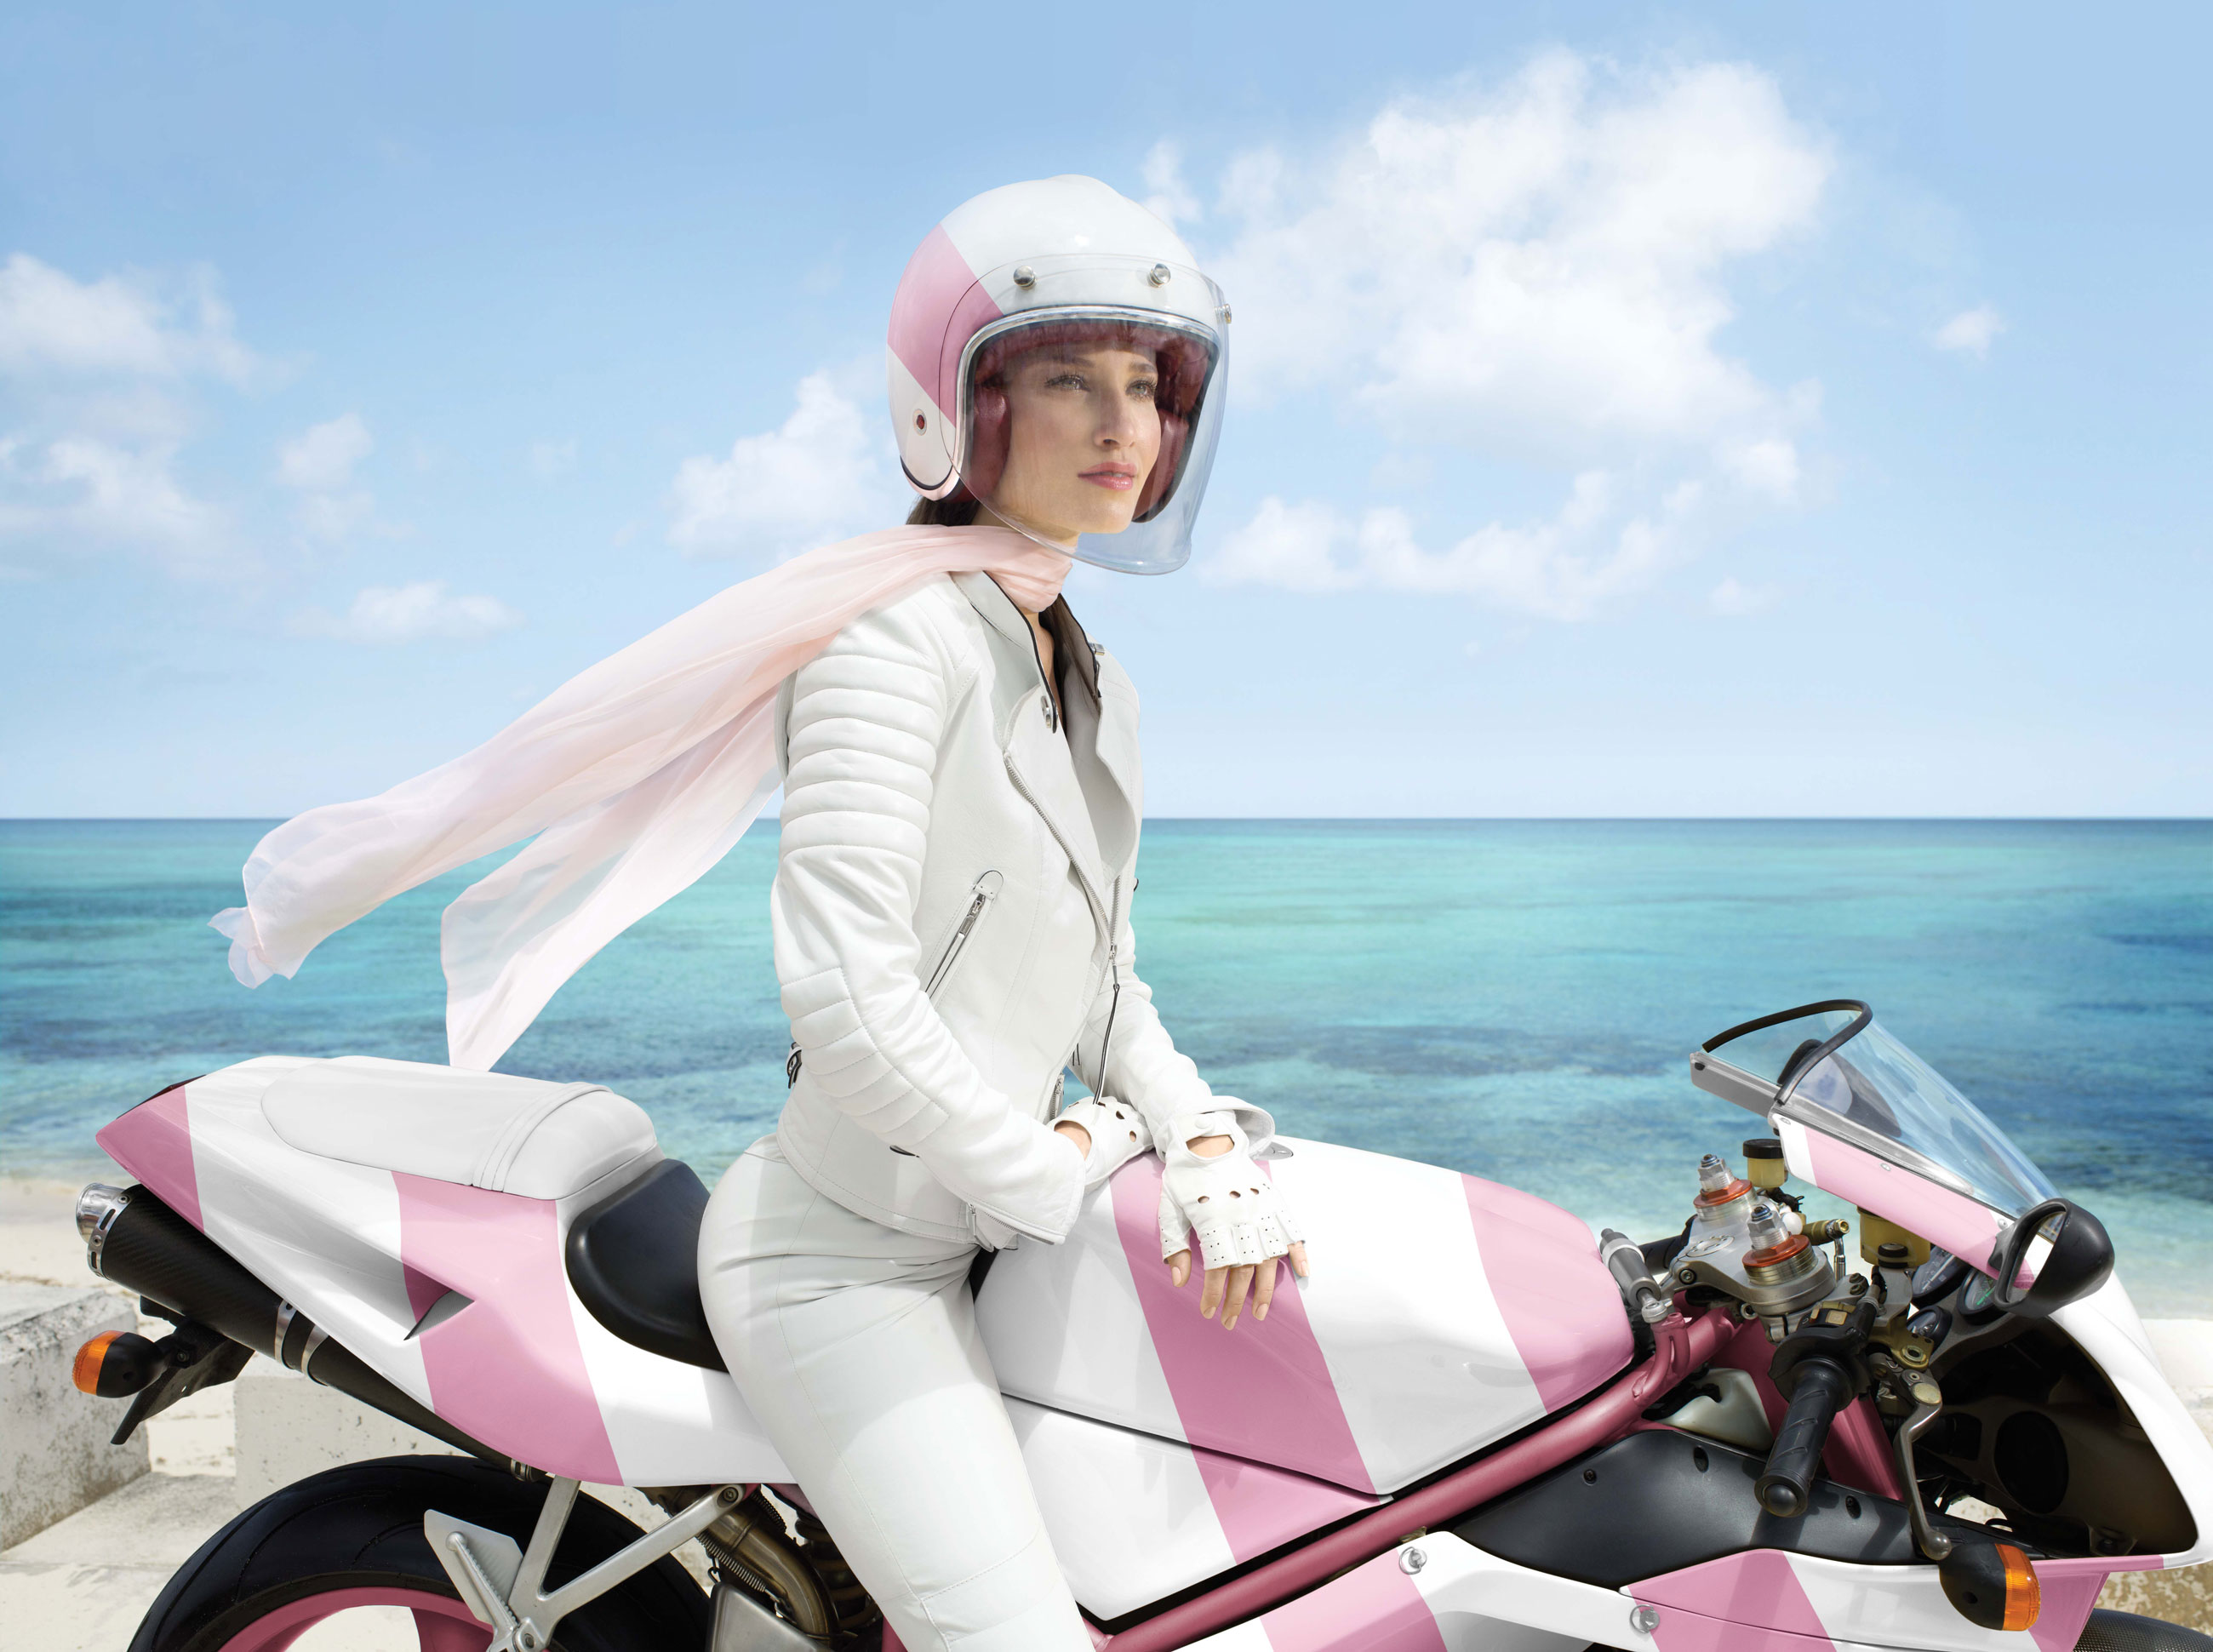 woman on motorcyle